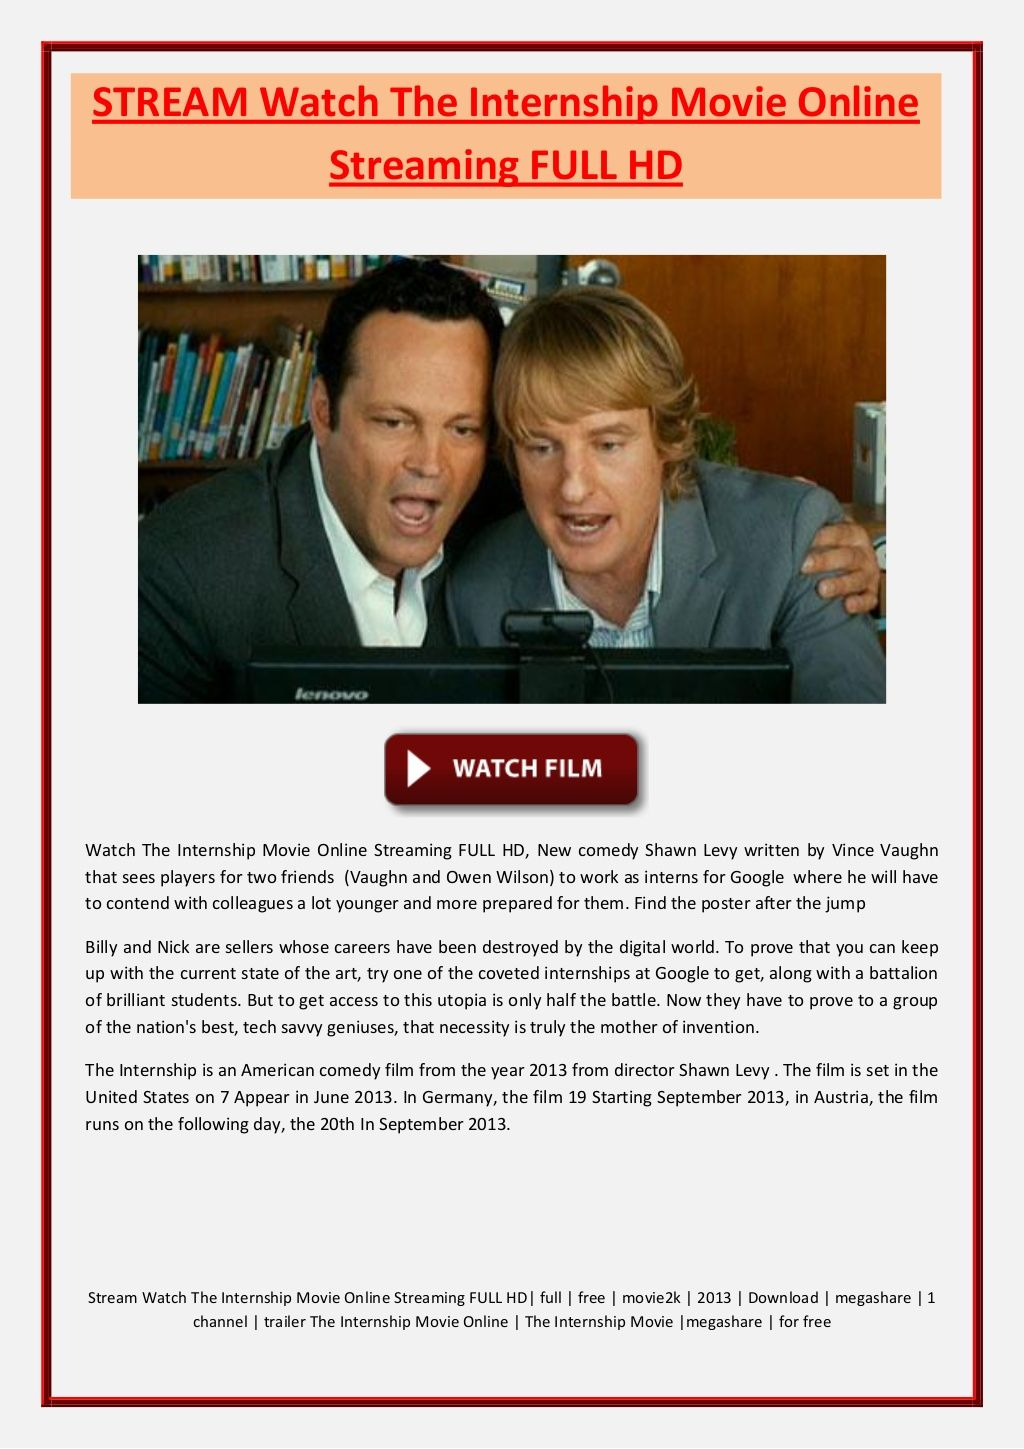 httpwwwslidesharenetinternshipmovie1stream watch the internship movie online streaming full hd stream watch the internship movie online str